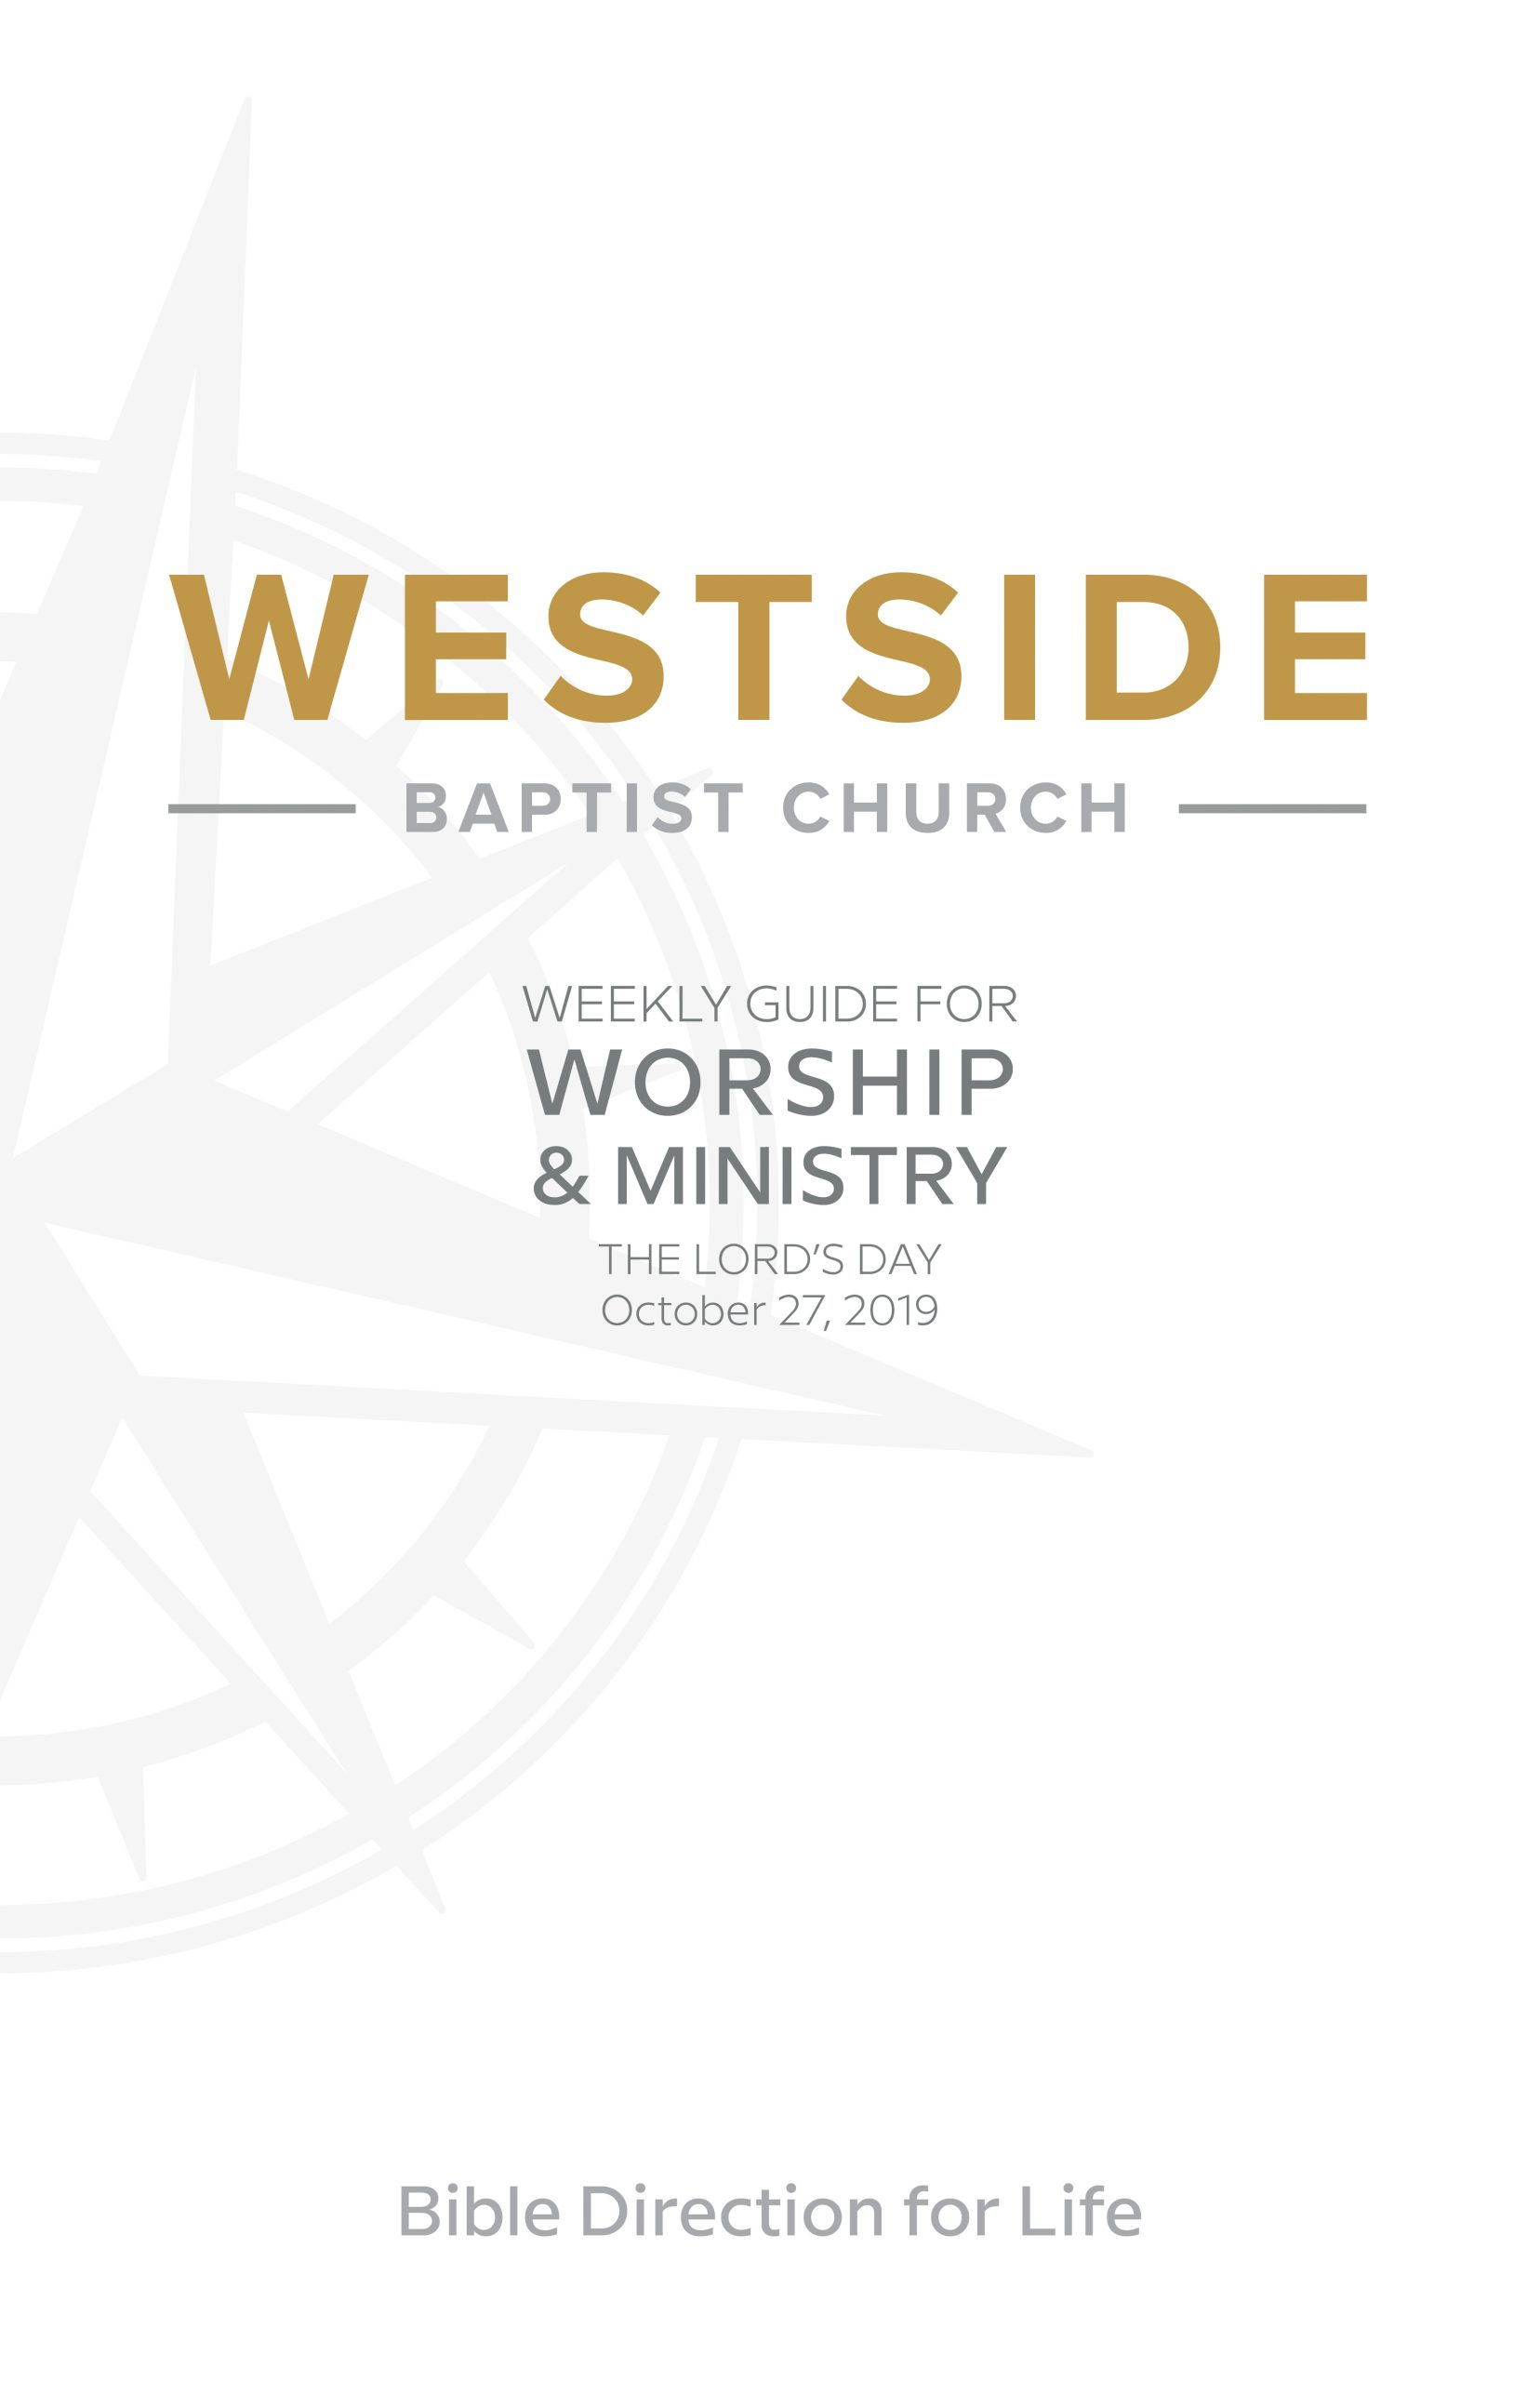 Weekly Guide for Worship and Ministry—October 27